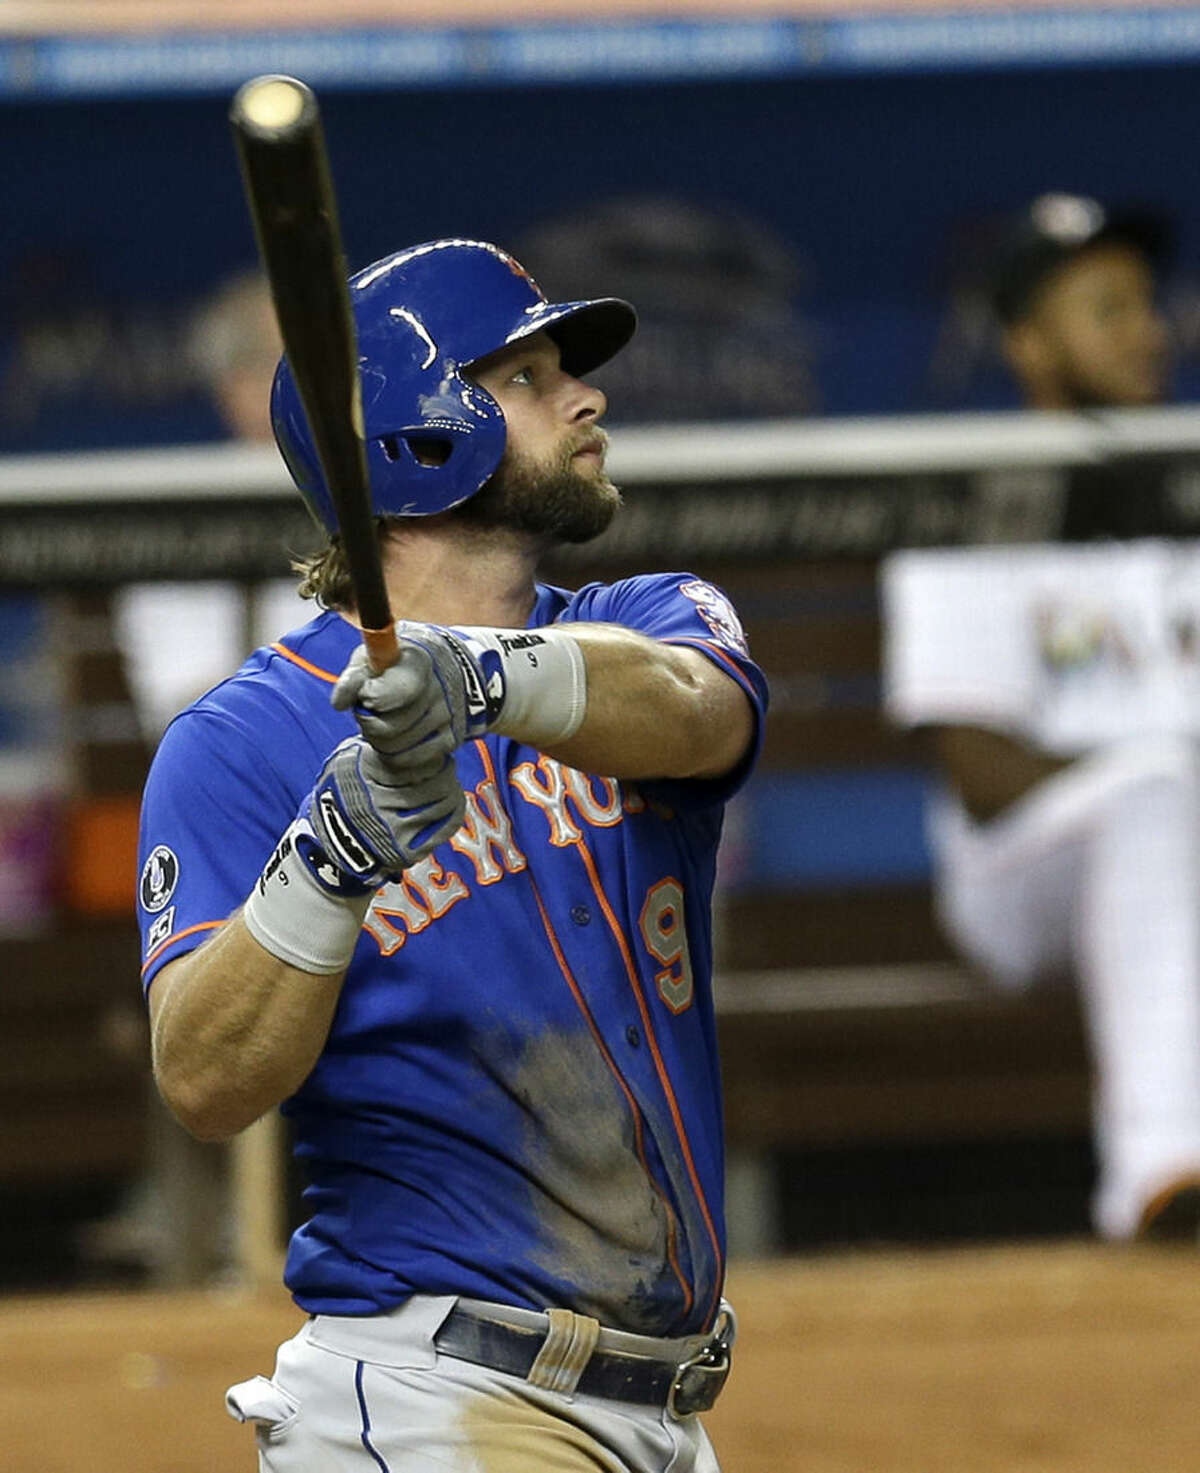 New York Mets' Kirk Nieuwenhuis watches his two-run home run against the Miami Marlins in the fourth inning of a baseball game in Miami, Wednesday, Sept. 3, 2014. Travis d'Arnaud scored on the home run. (AP Photo/Alan Diaz)